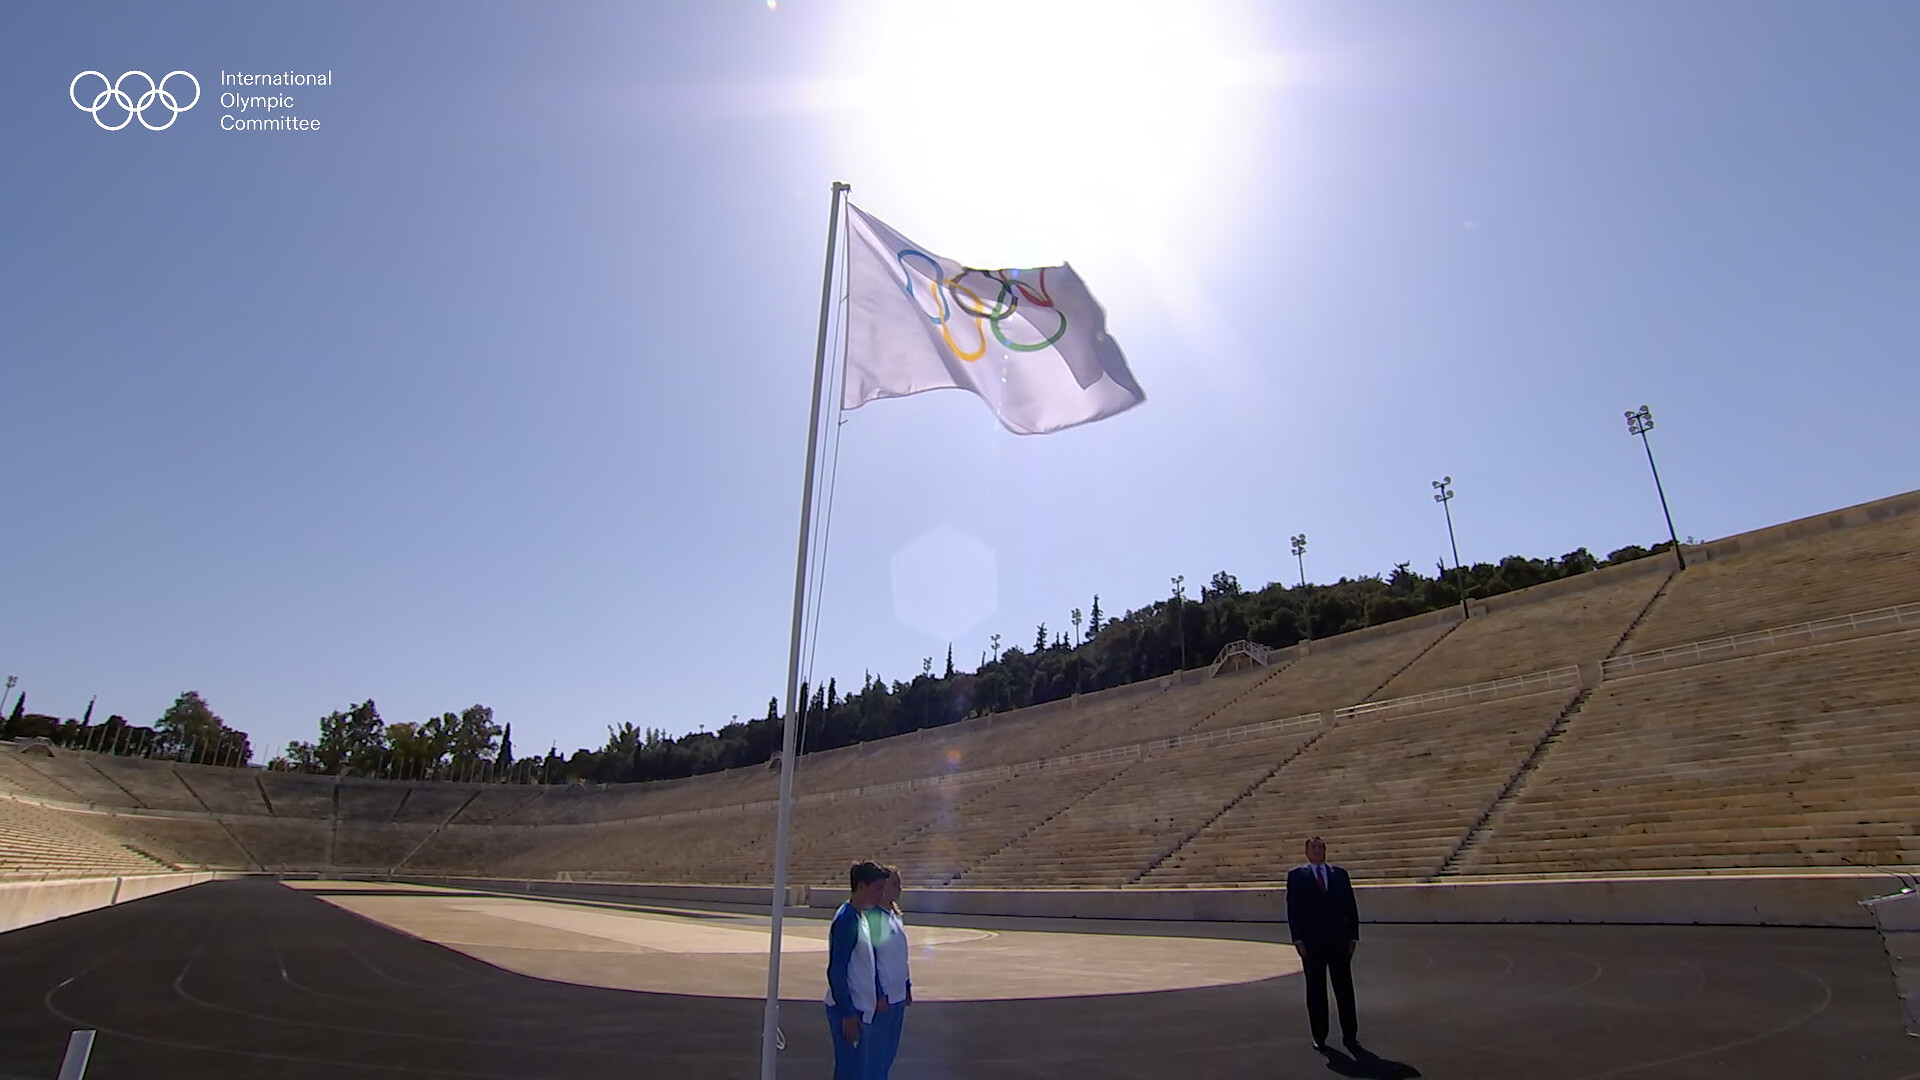 Athens confirmed as host city for 2025 IOC Session